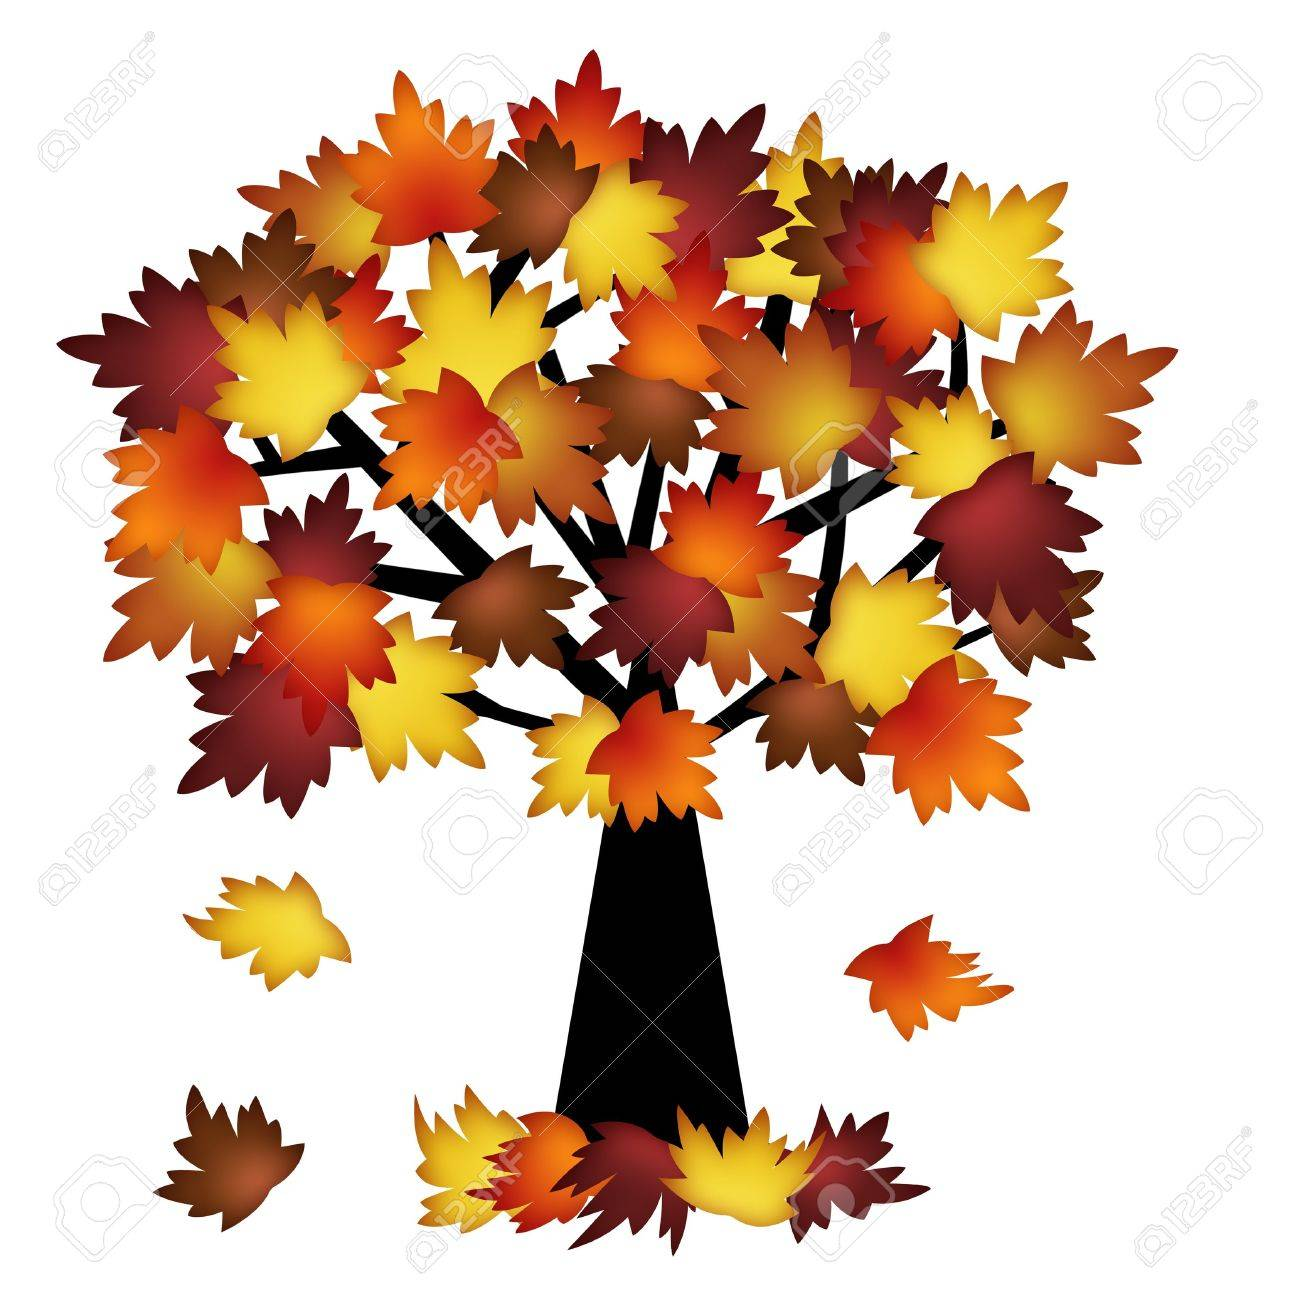 Colorful Fall Leaves On Tree Illustration In Autumn Stock Photo